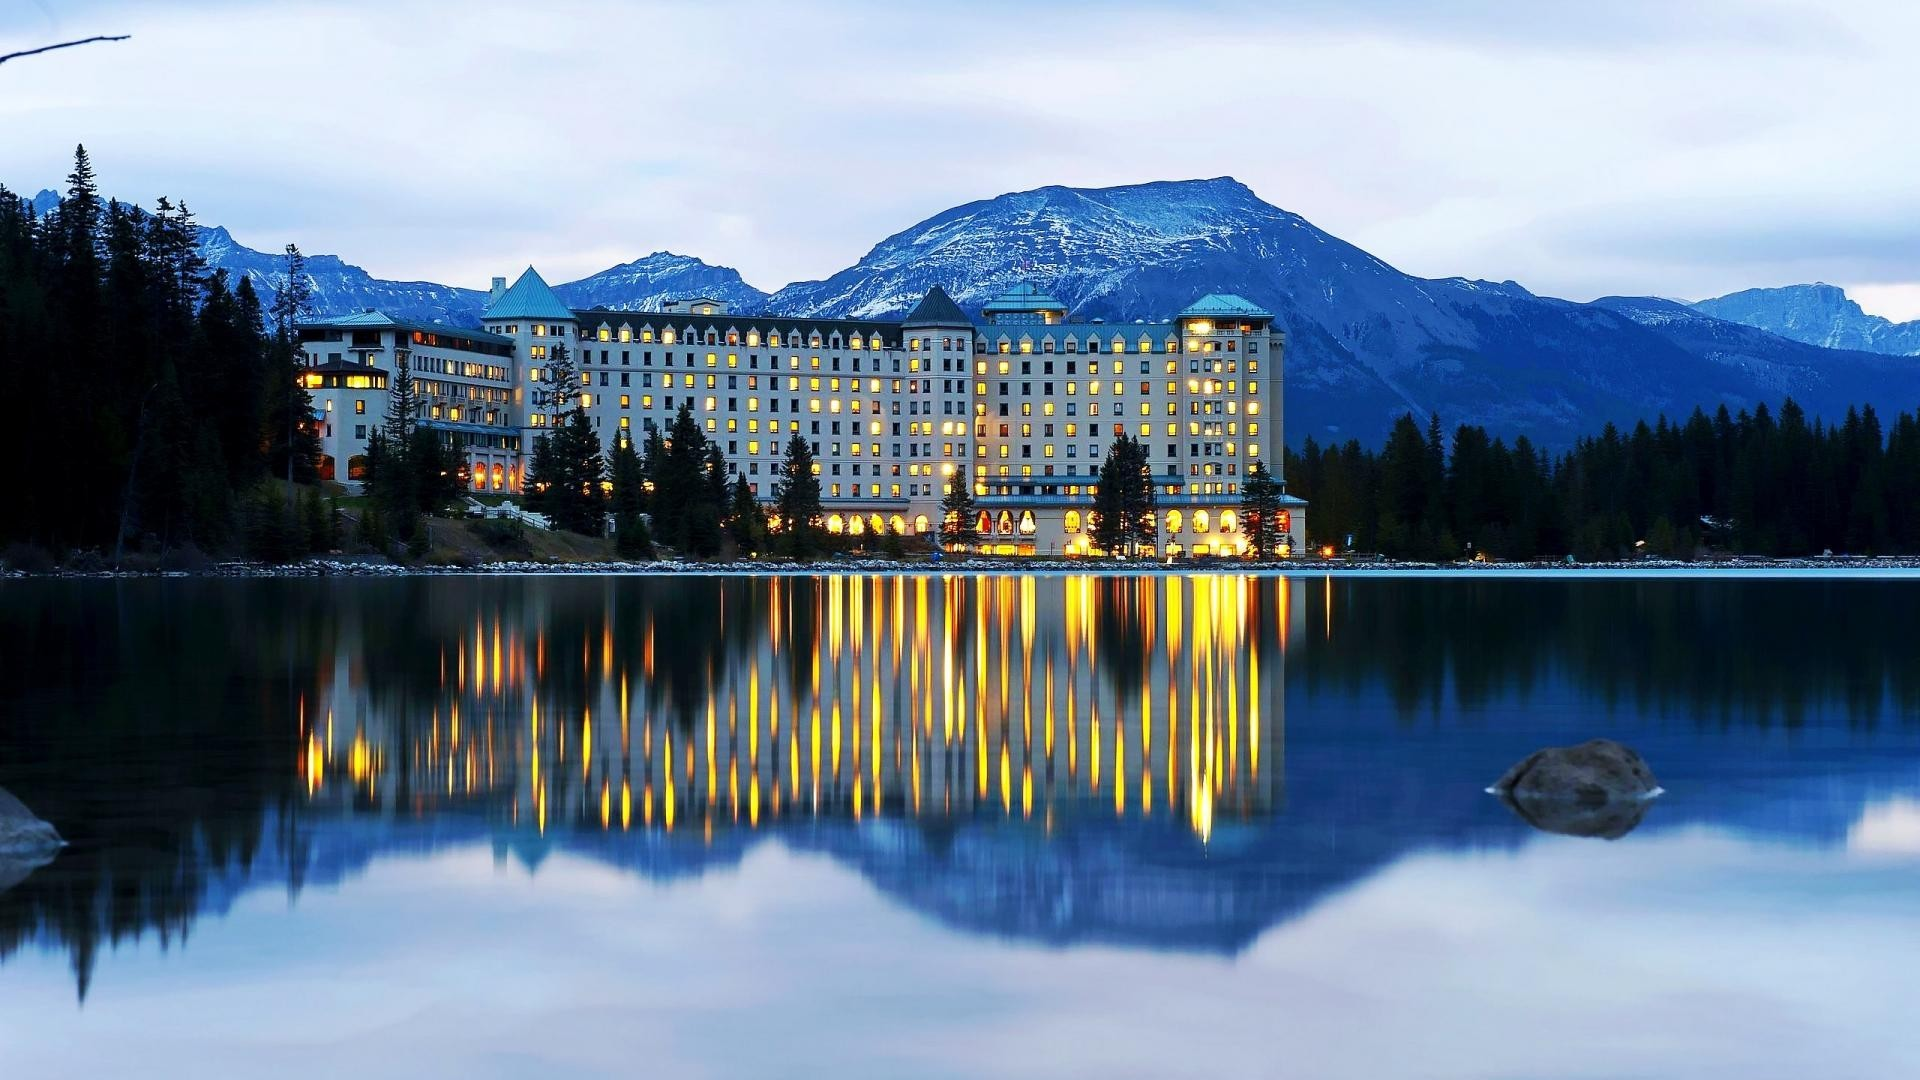 fairmont-chateau-on-lake-louise-near-banff